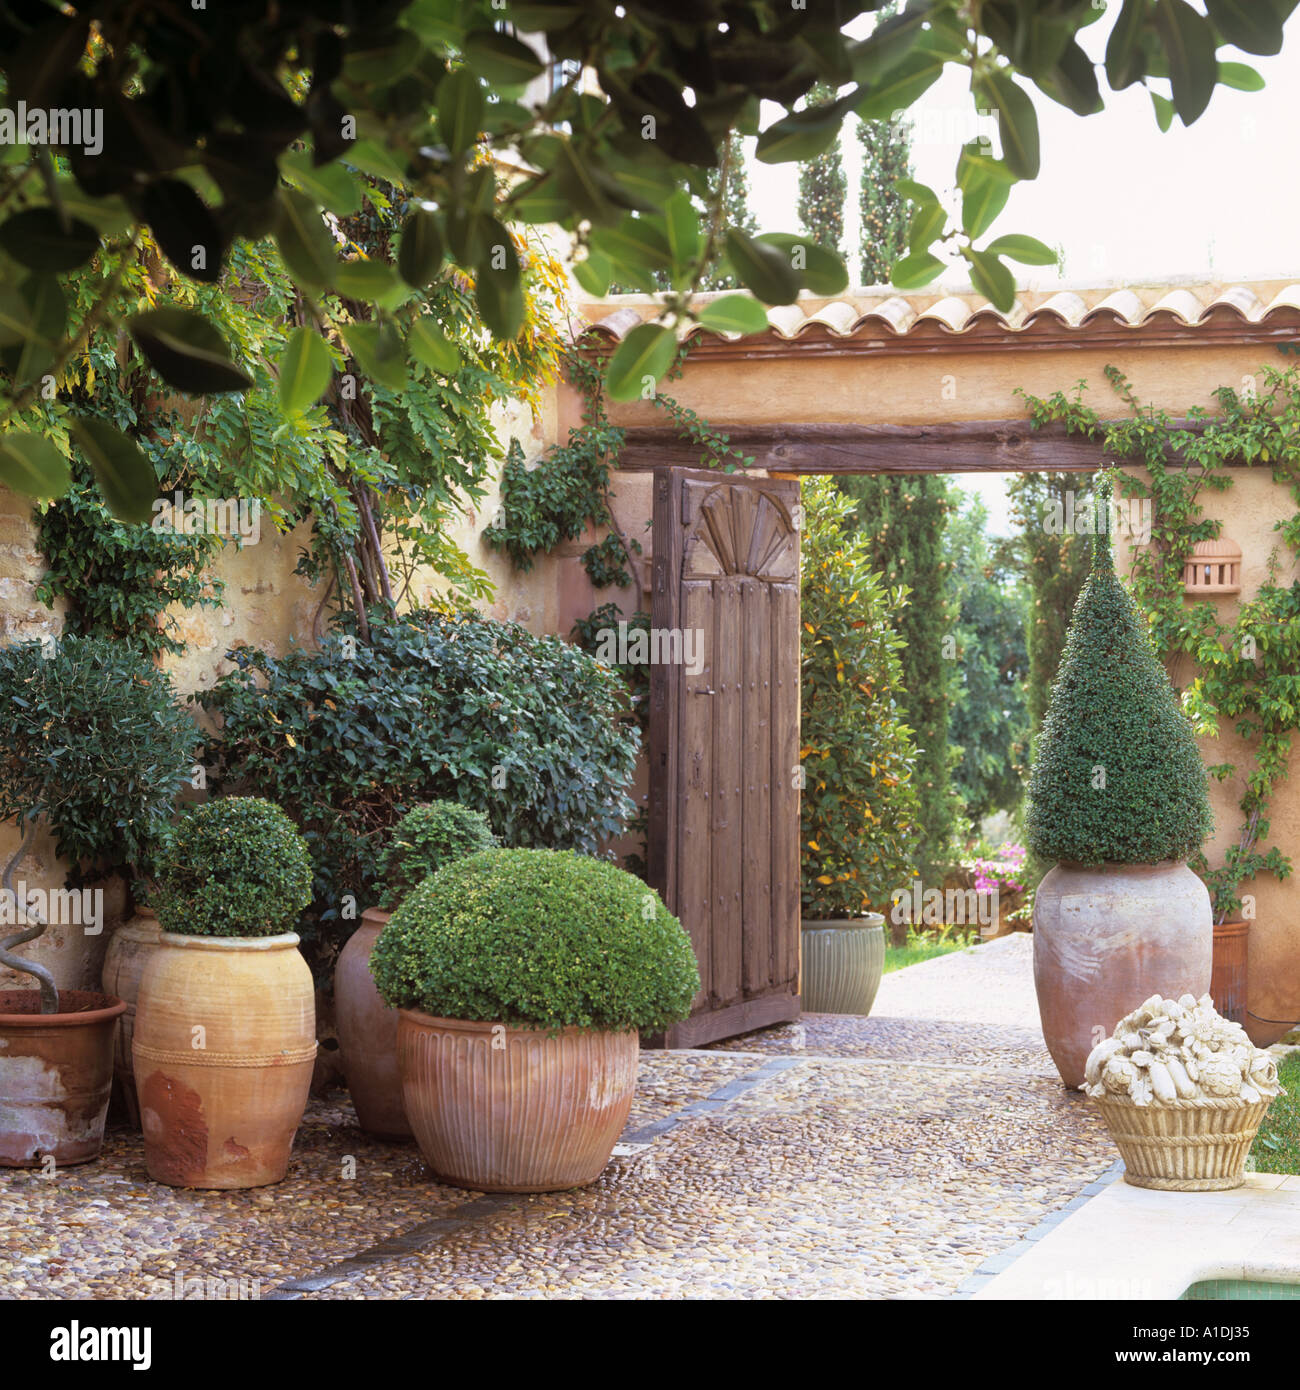 Mediterranean Villa Entrance With Terracotta Pots Stock